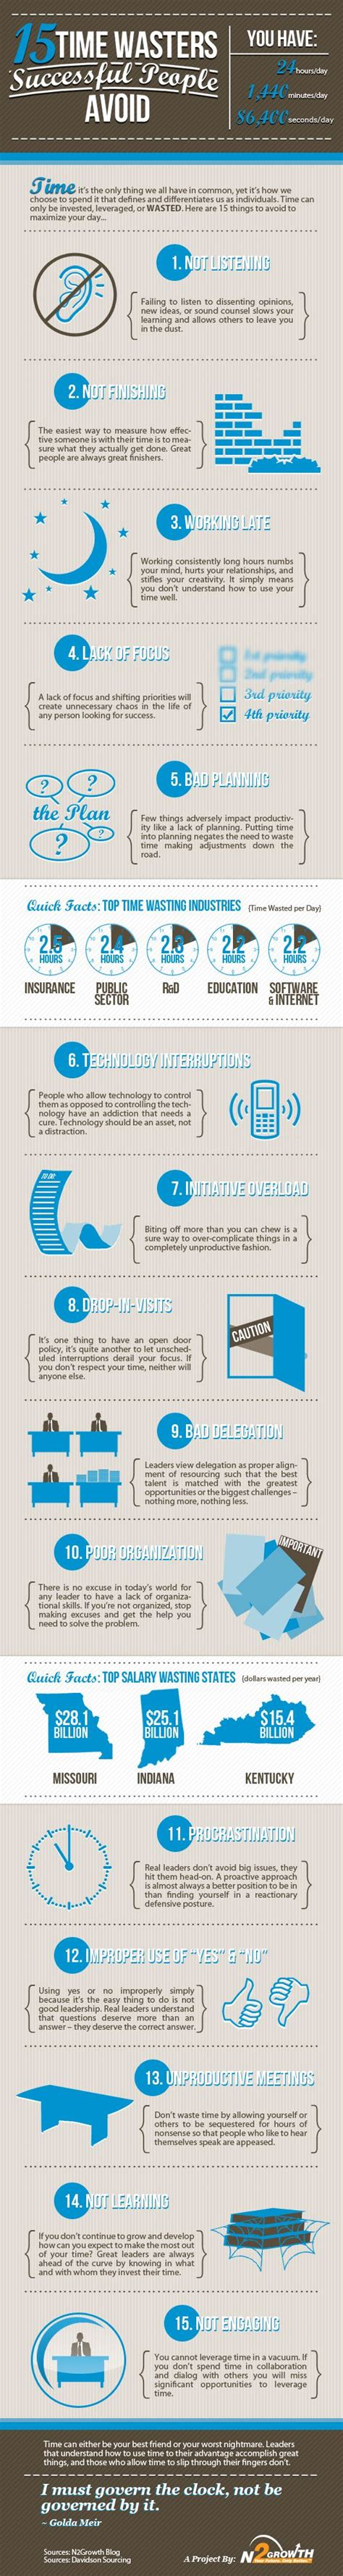 Some Time Wasters by 15 Time Wasters Successful Avoid Daily Infographic